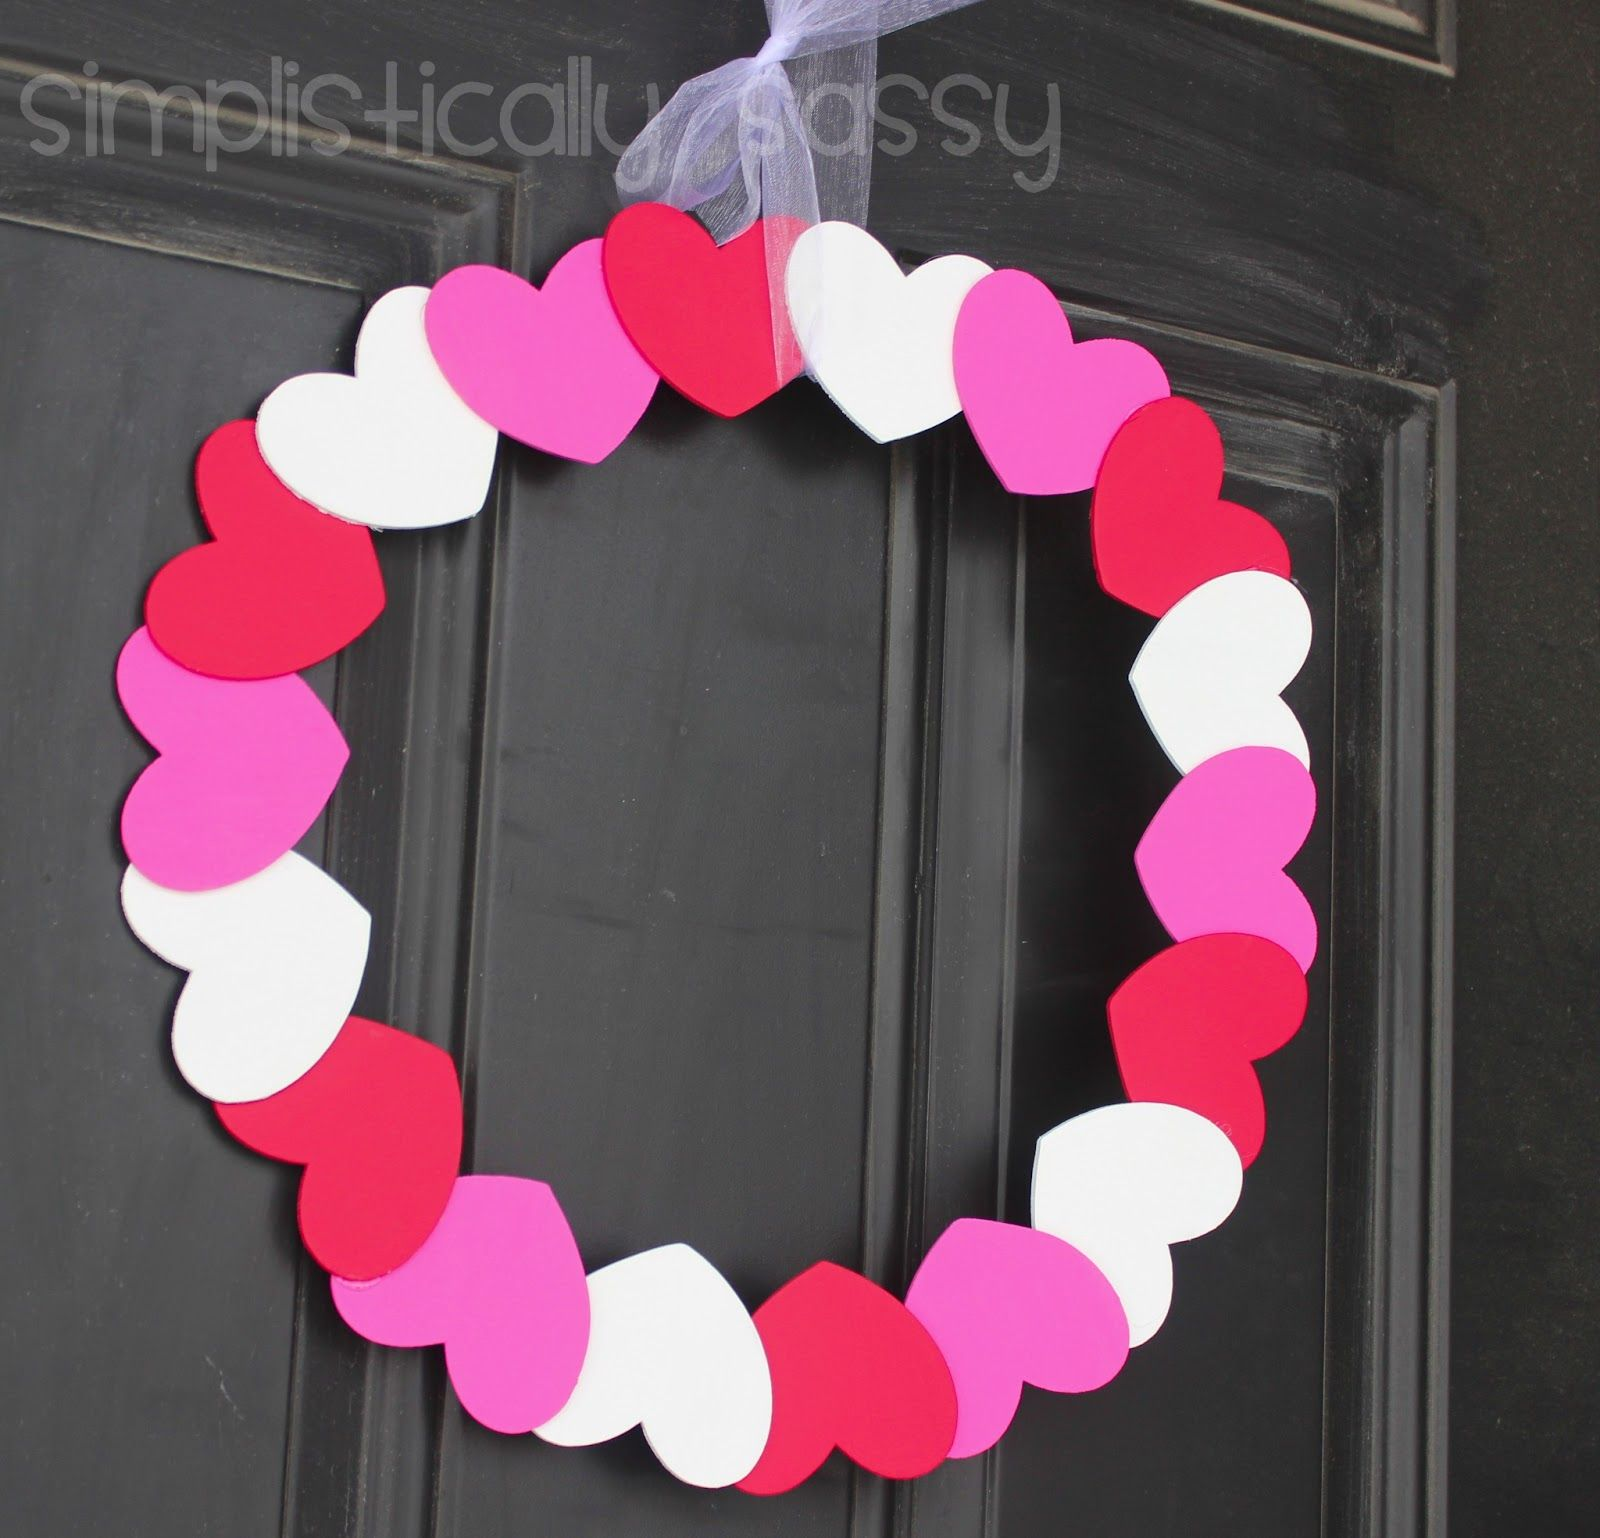 valentine wreath design inspiration ideas with colorful paper wreath love shape style and beautiful white soft - Valentine Decorations To Make